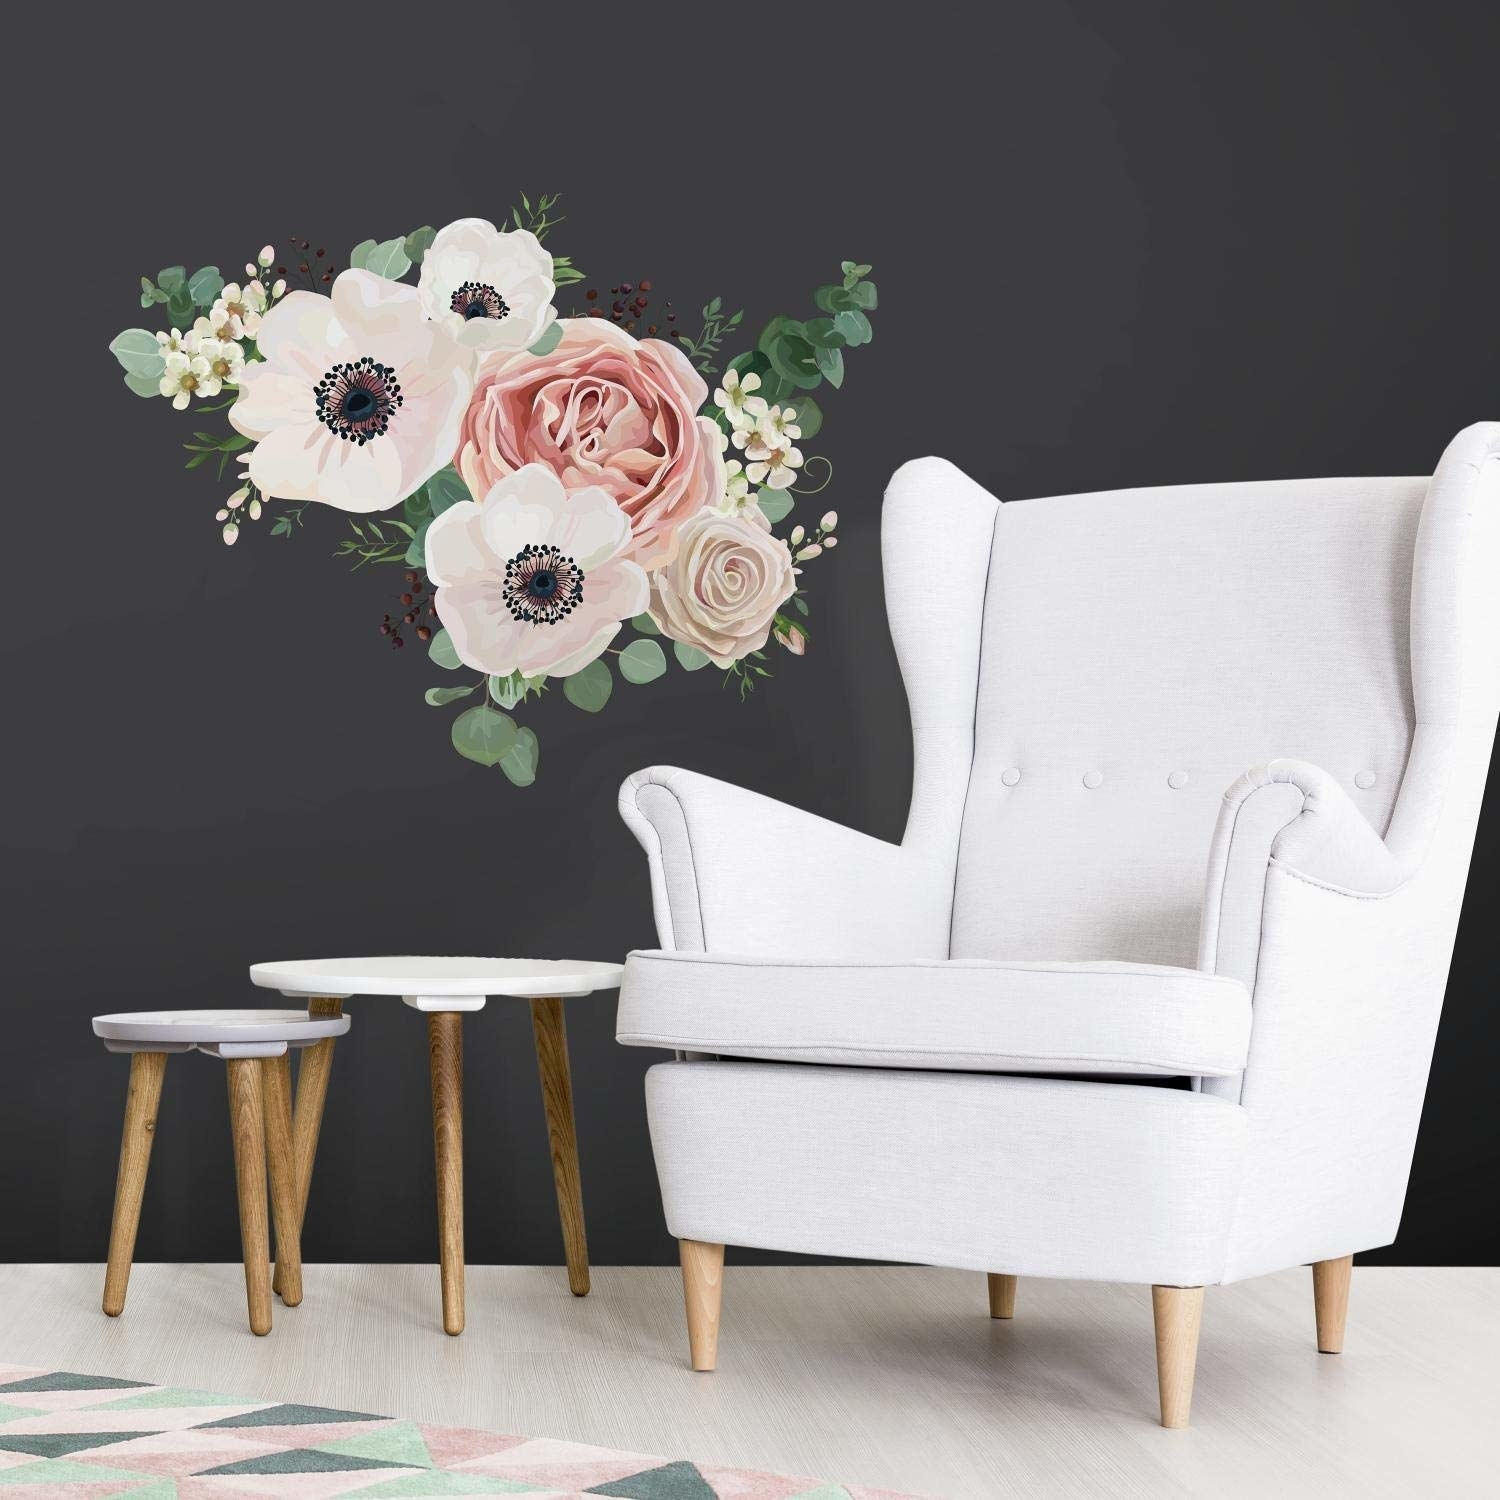 A wall decal shaped like a pink and ivory cluster of flowers stuck to a wall